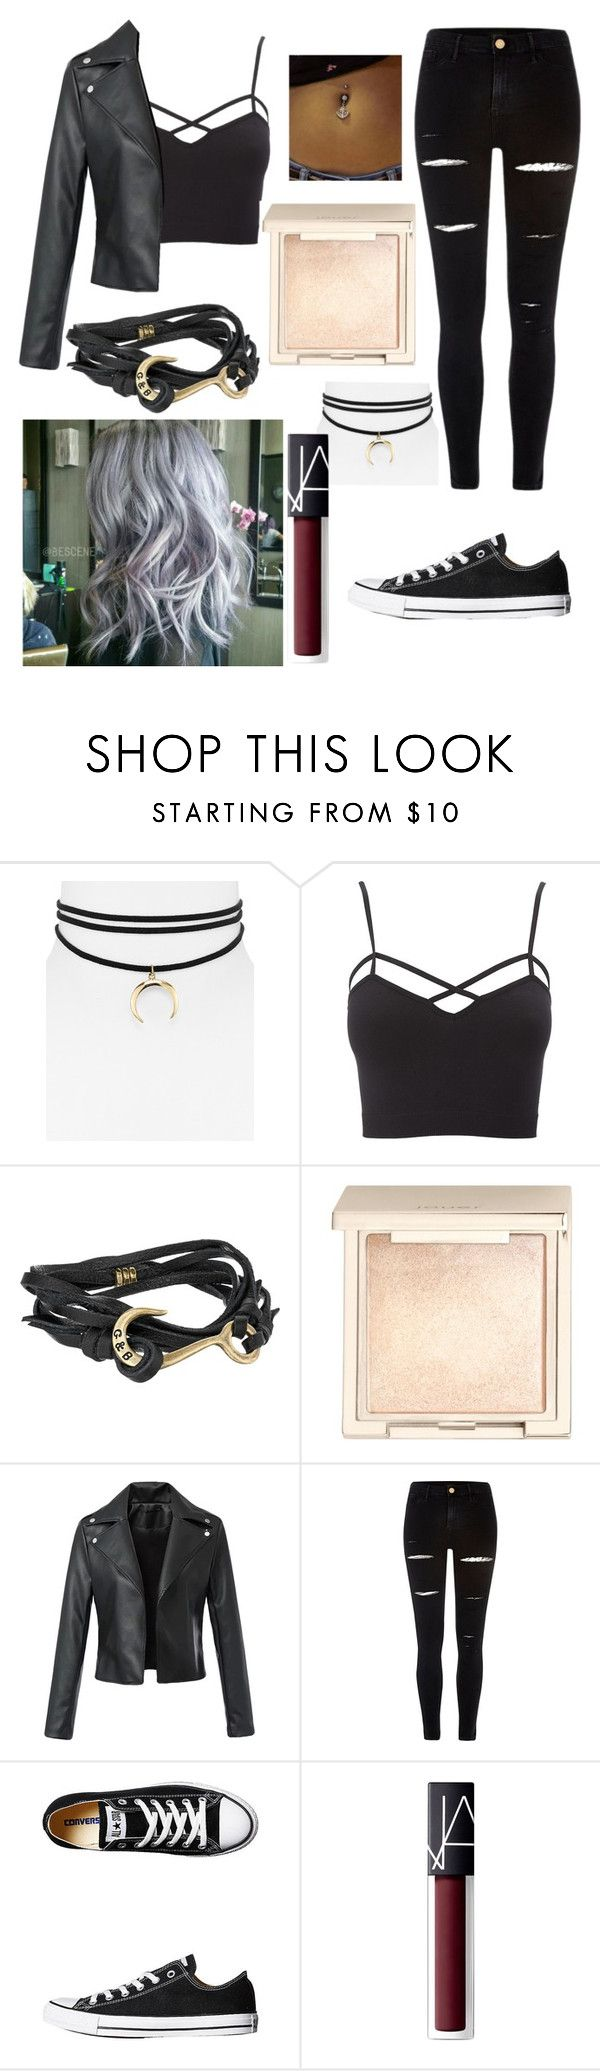 """Outfit #41"" by unicornicamitha on Polyvore featuring Jules Smith, Charlotte Russe, Giles & Brother, Jouer, River Island, Converse, NARS Cosmetics and plus size clothing"